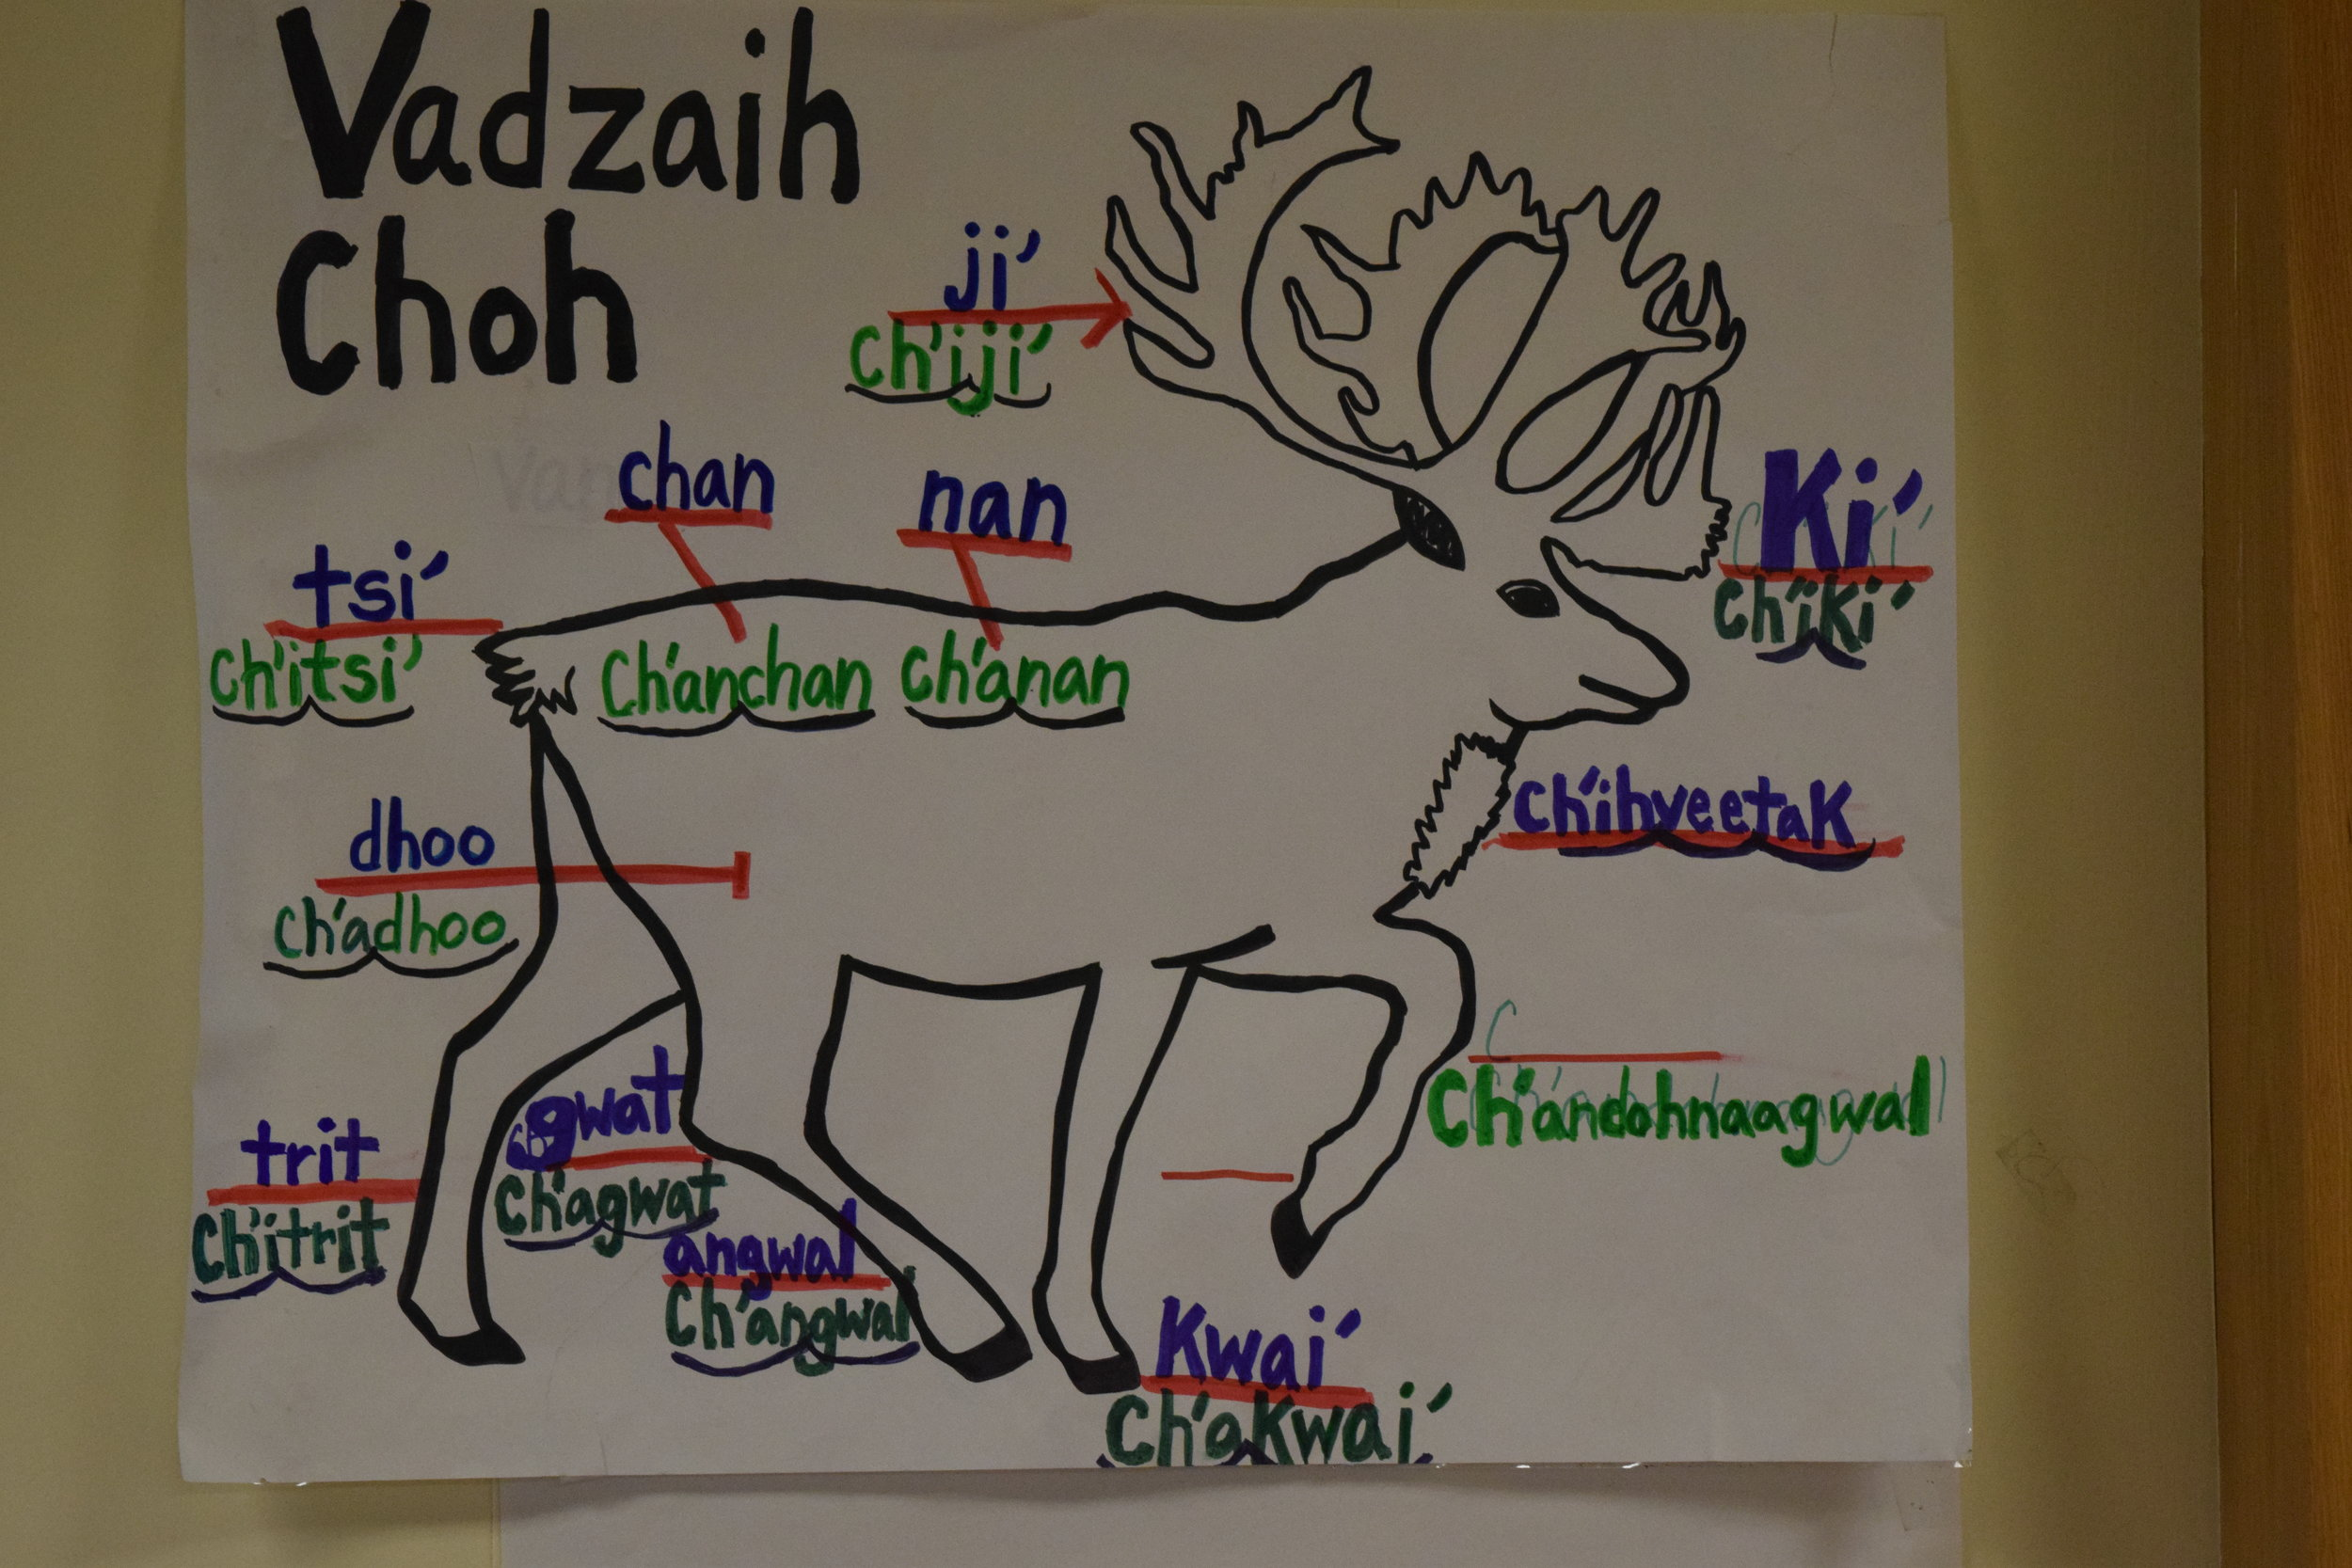 About - Find out about Yukon Flats Indigenous Language Revitalization Institute efforts,methods, and the work we are doing.